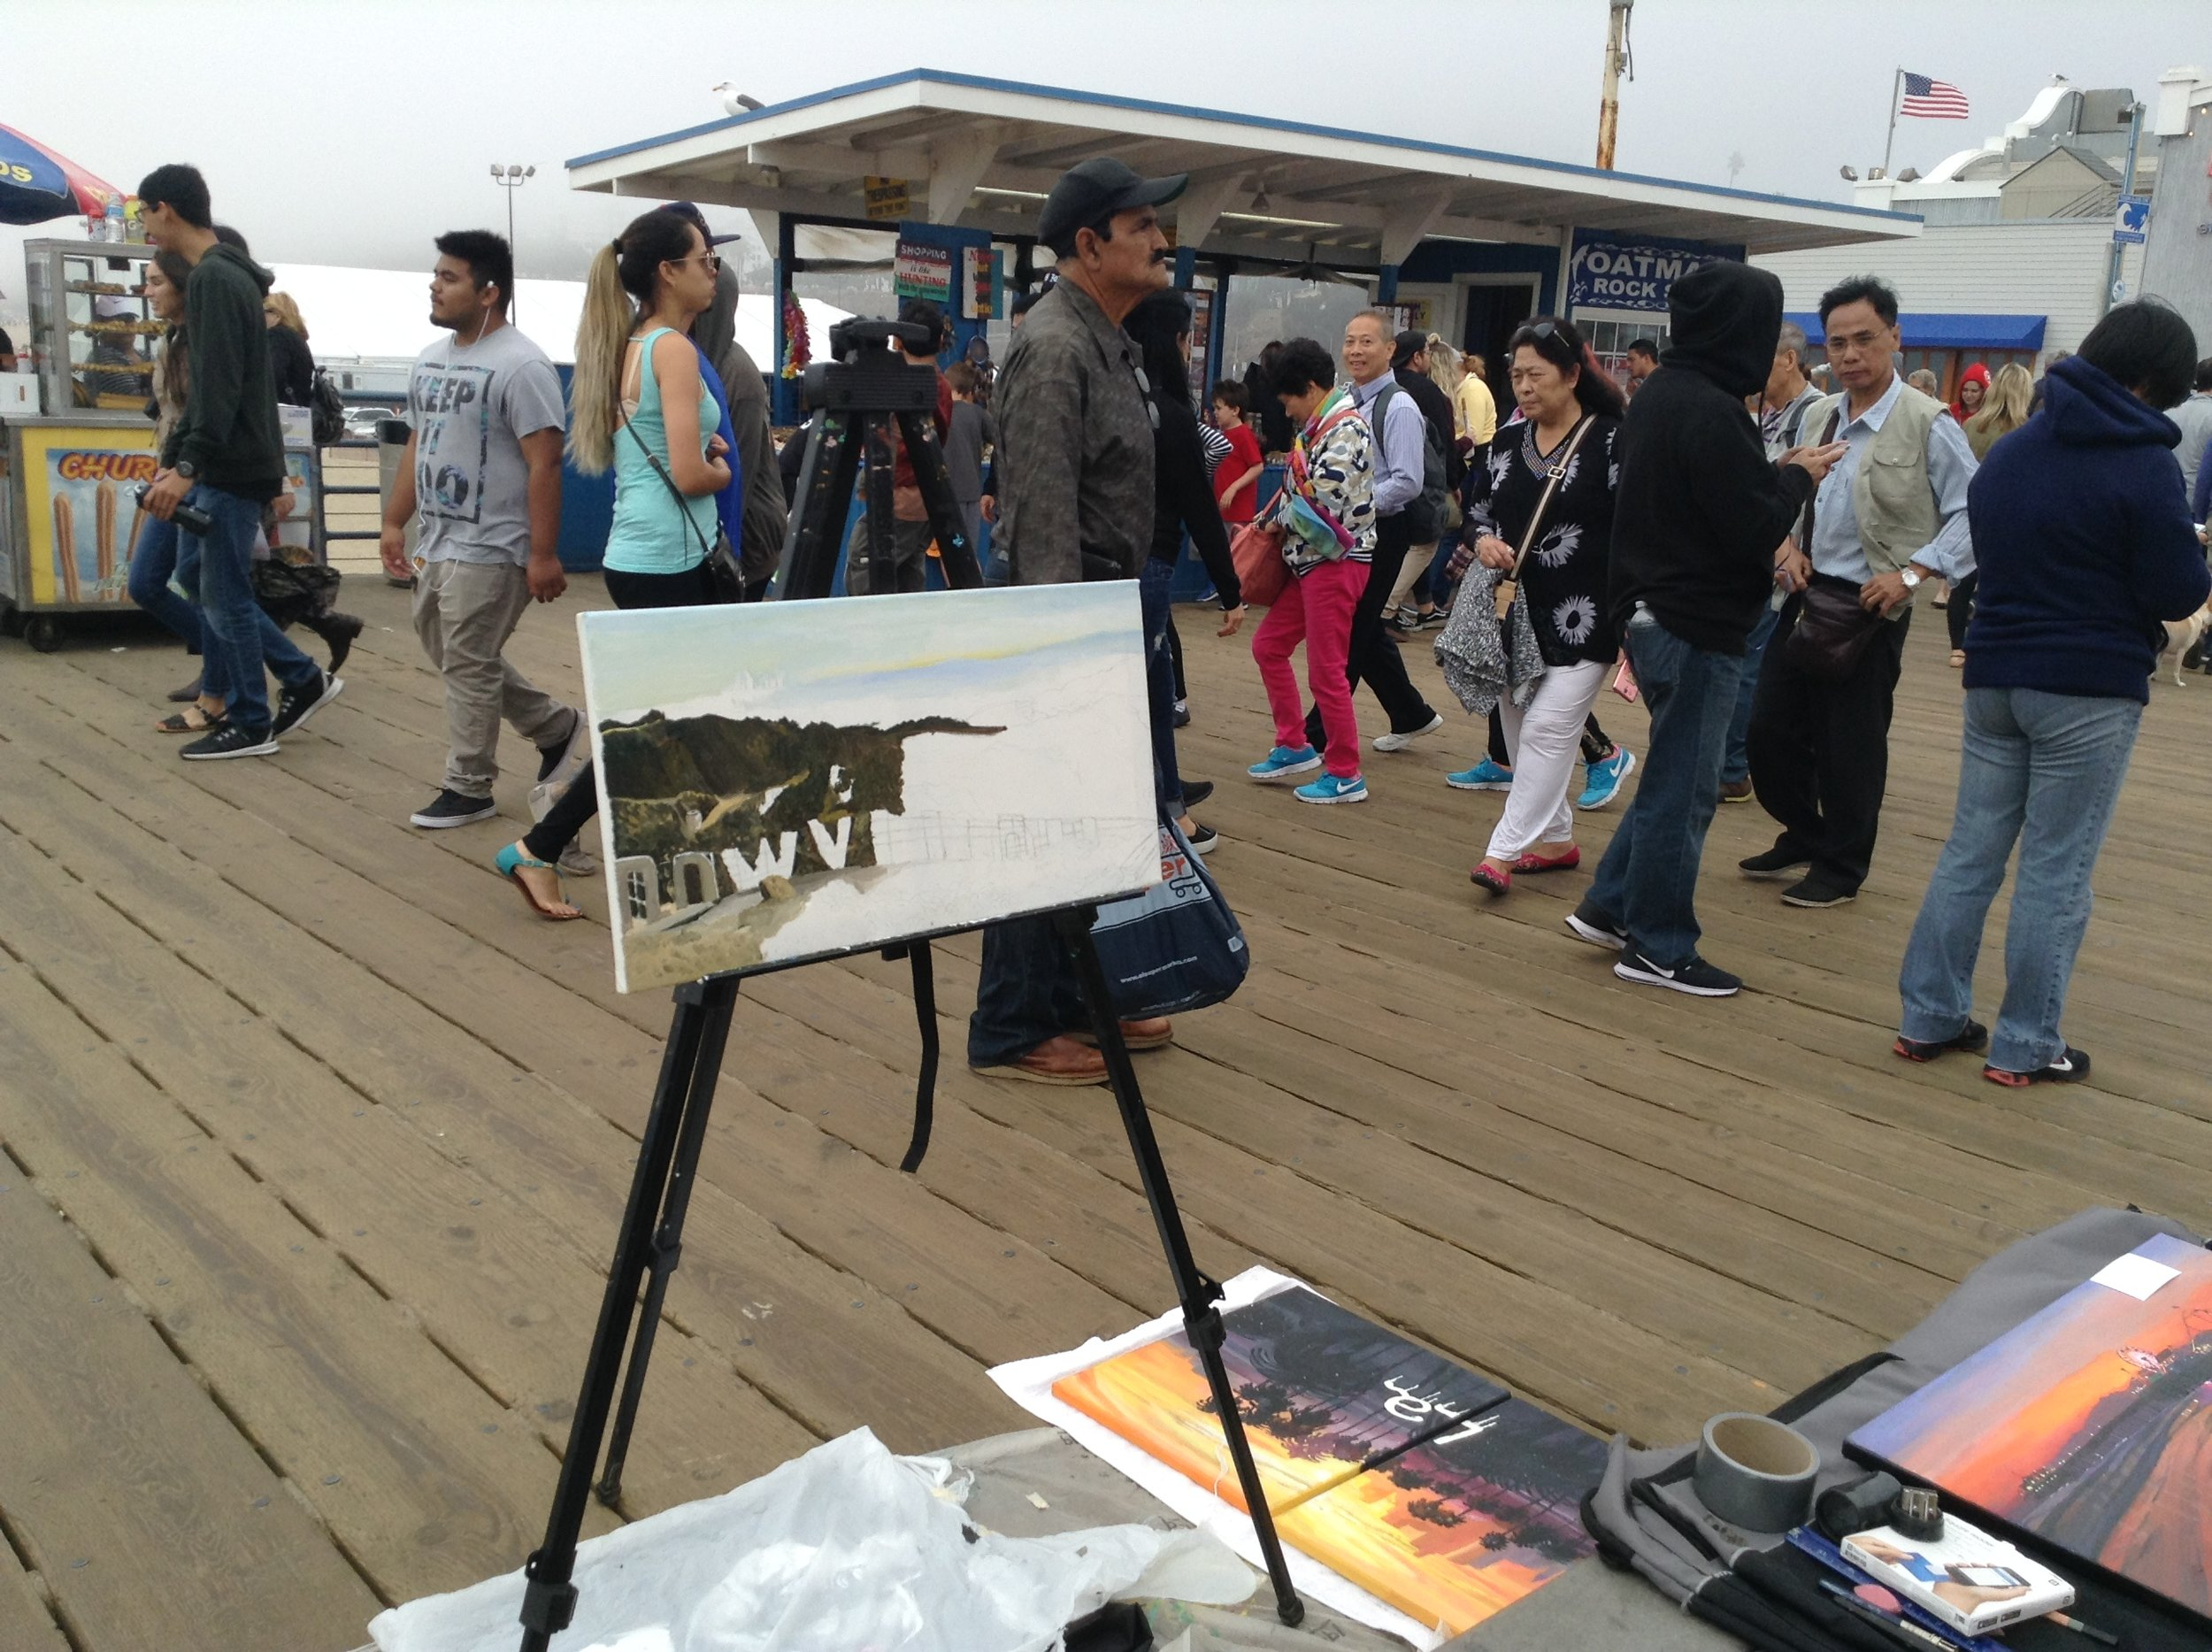 Art Show on the Santa Monica Pier in Los Angeles, California this past weekend.